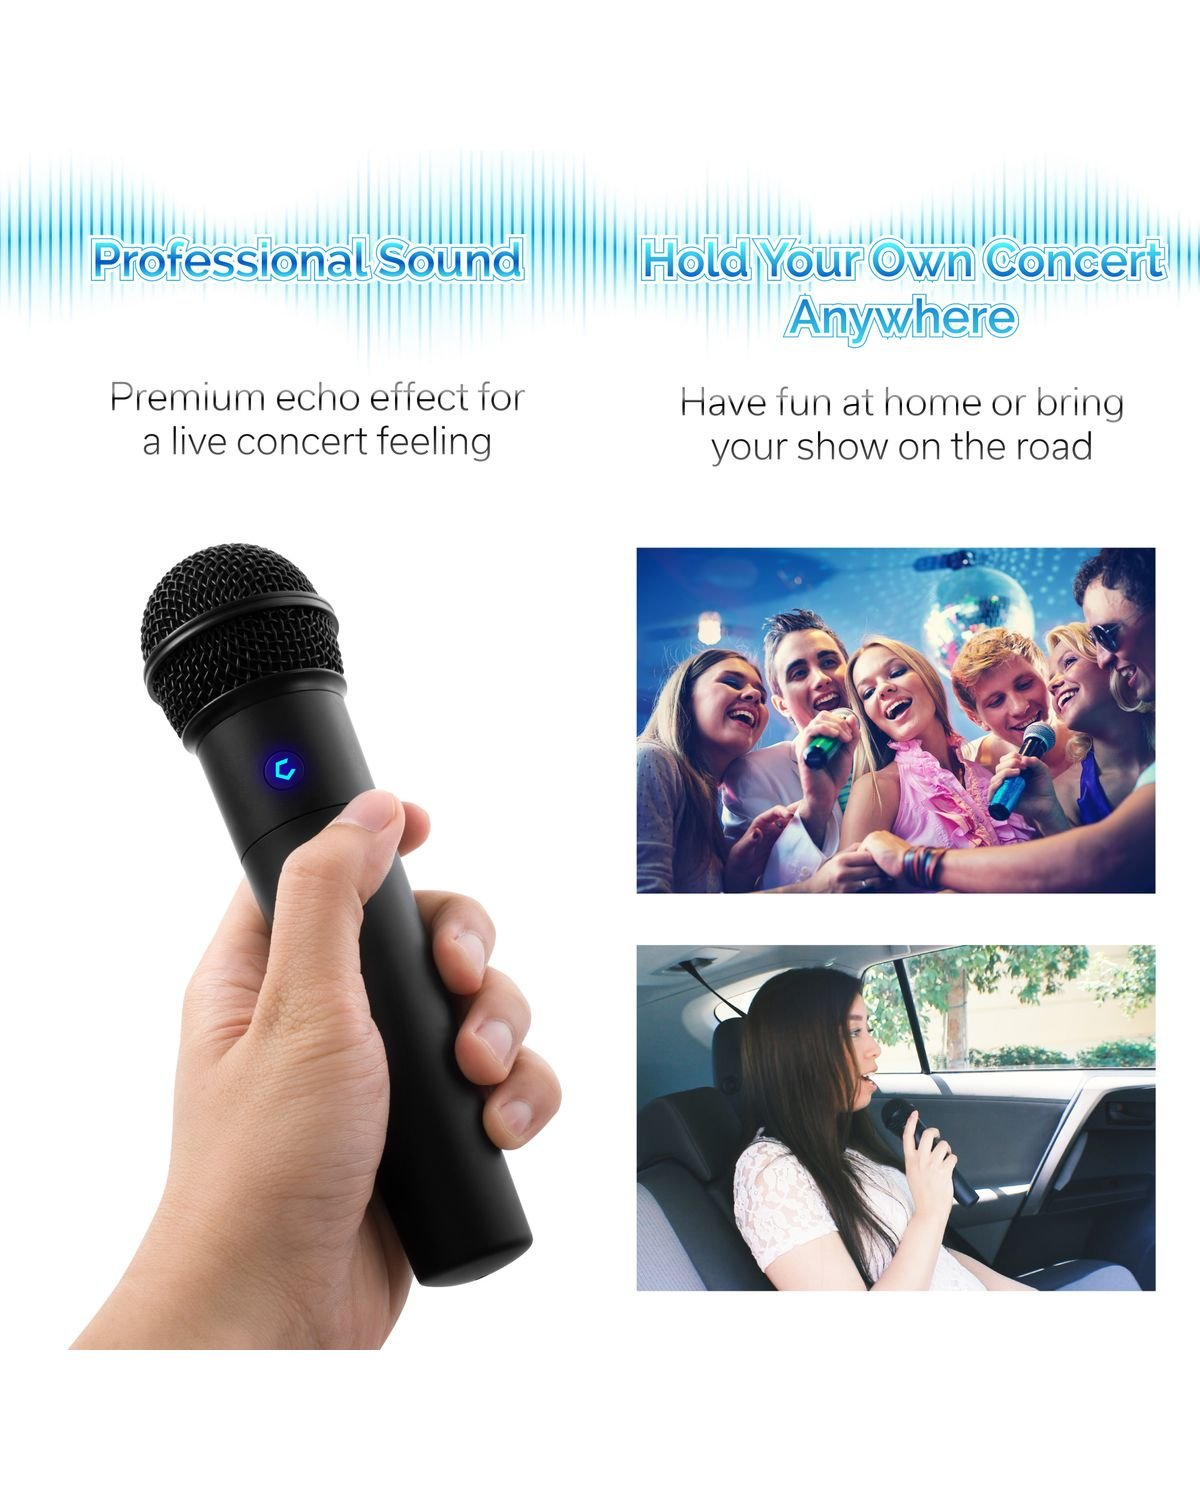 Cobble Pro Wireless Karaoke Microphone 2-pack Mic [Source Vocal Removal Technology][Choose Unlimited Music Source from YouTube, Compatible with iPhone iPad Phone Tablet] New Model BT Speaker Machine by Cobble (Image #4)